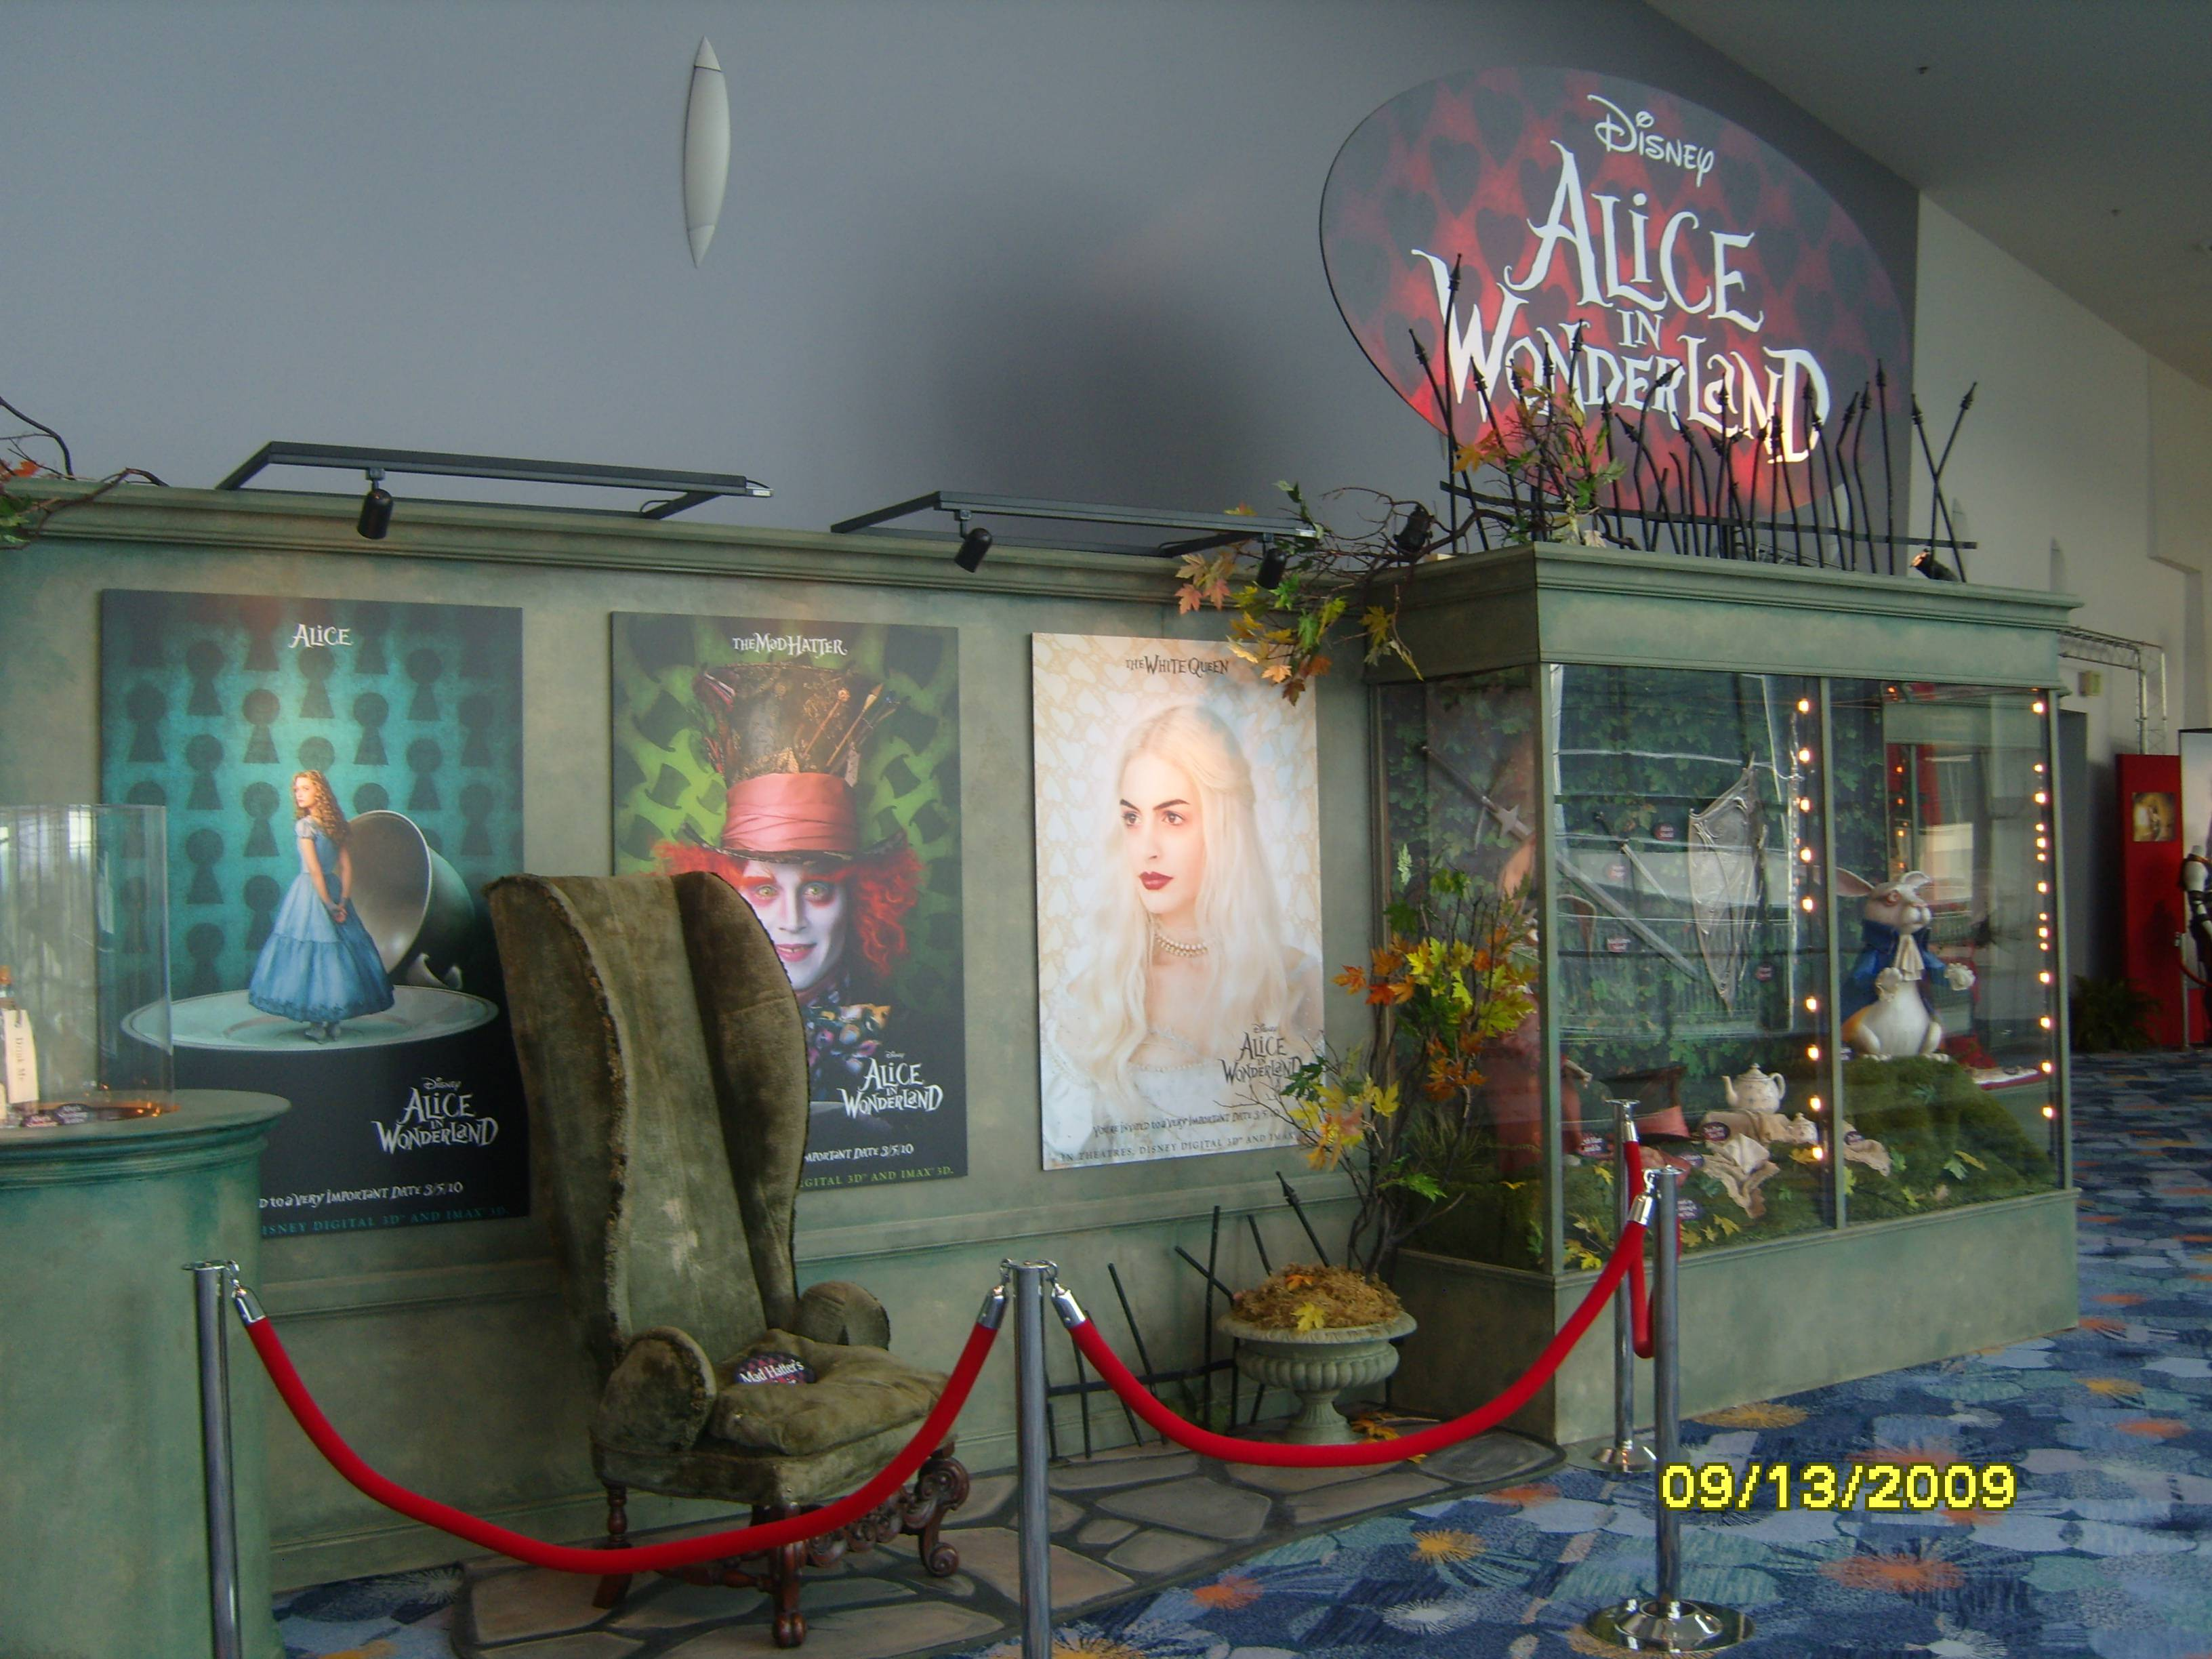 D23 Expo: Alice in Wonderland